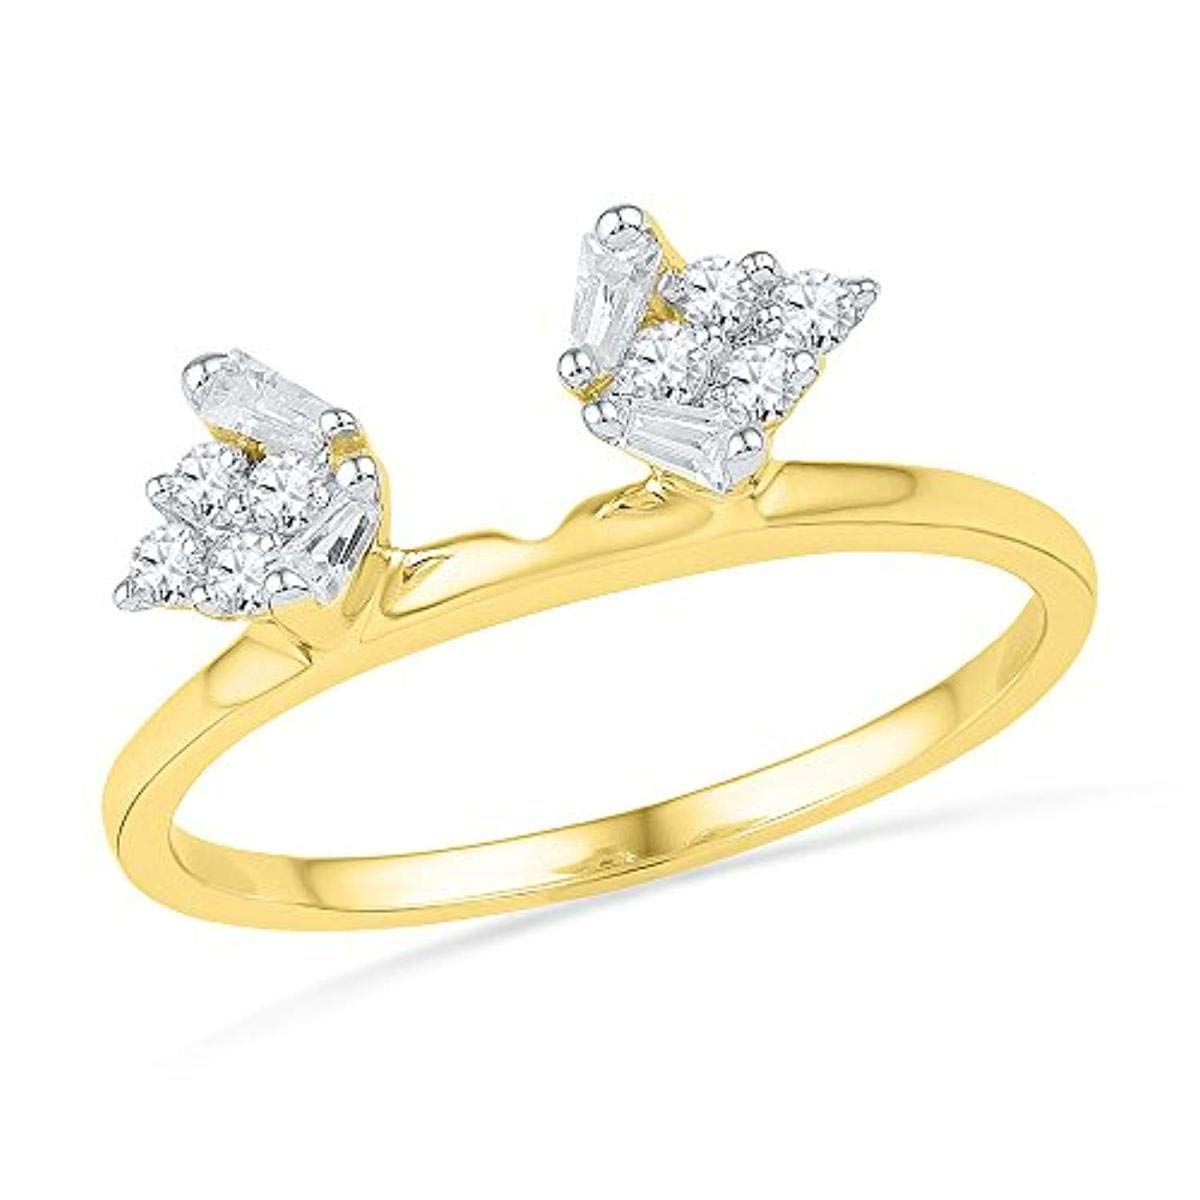 Roy Rose Jewelry 14K Yellow Gold Womens Baguette Diamond Ring Guard Wrap Solitaire Enhancer 1//4-Carat tw